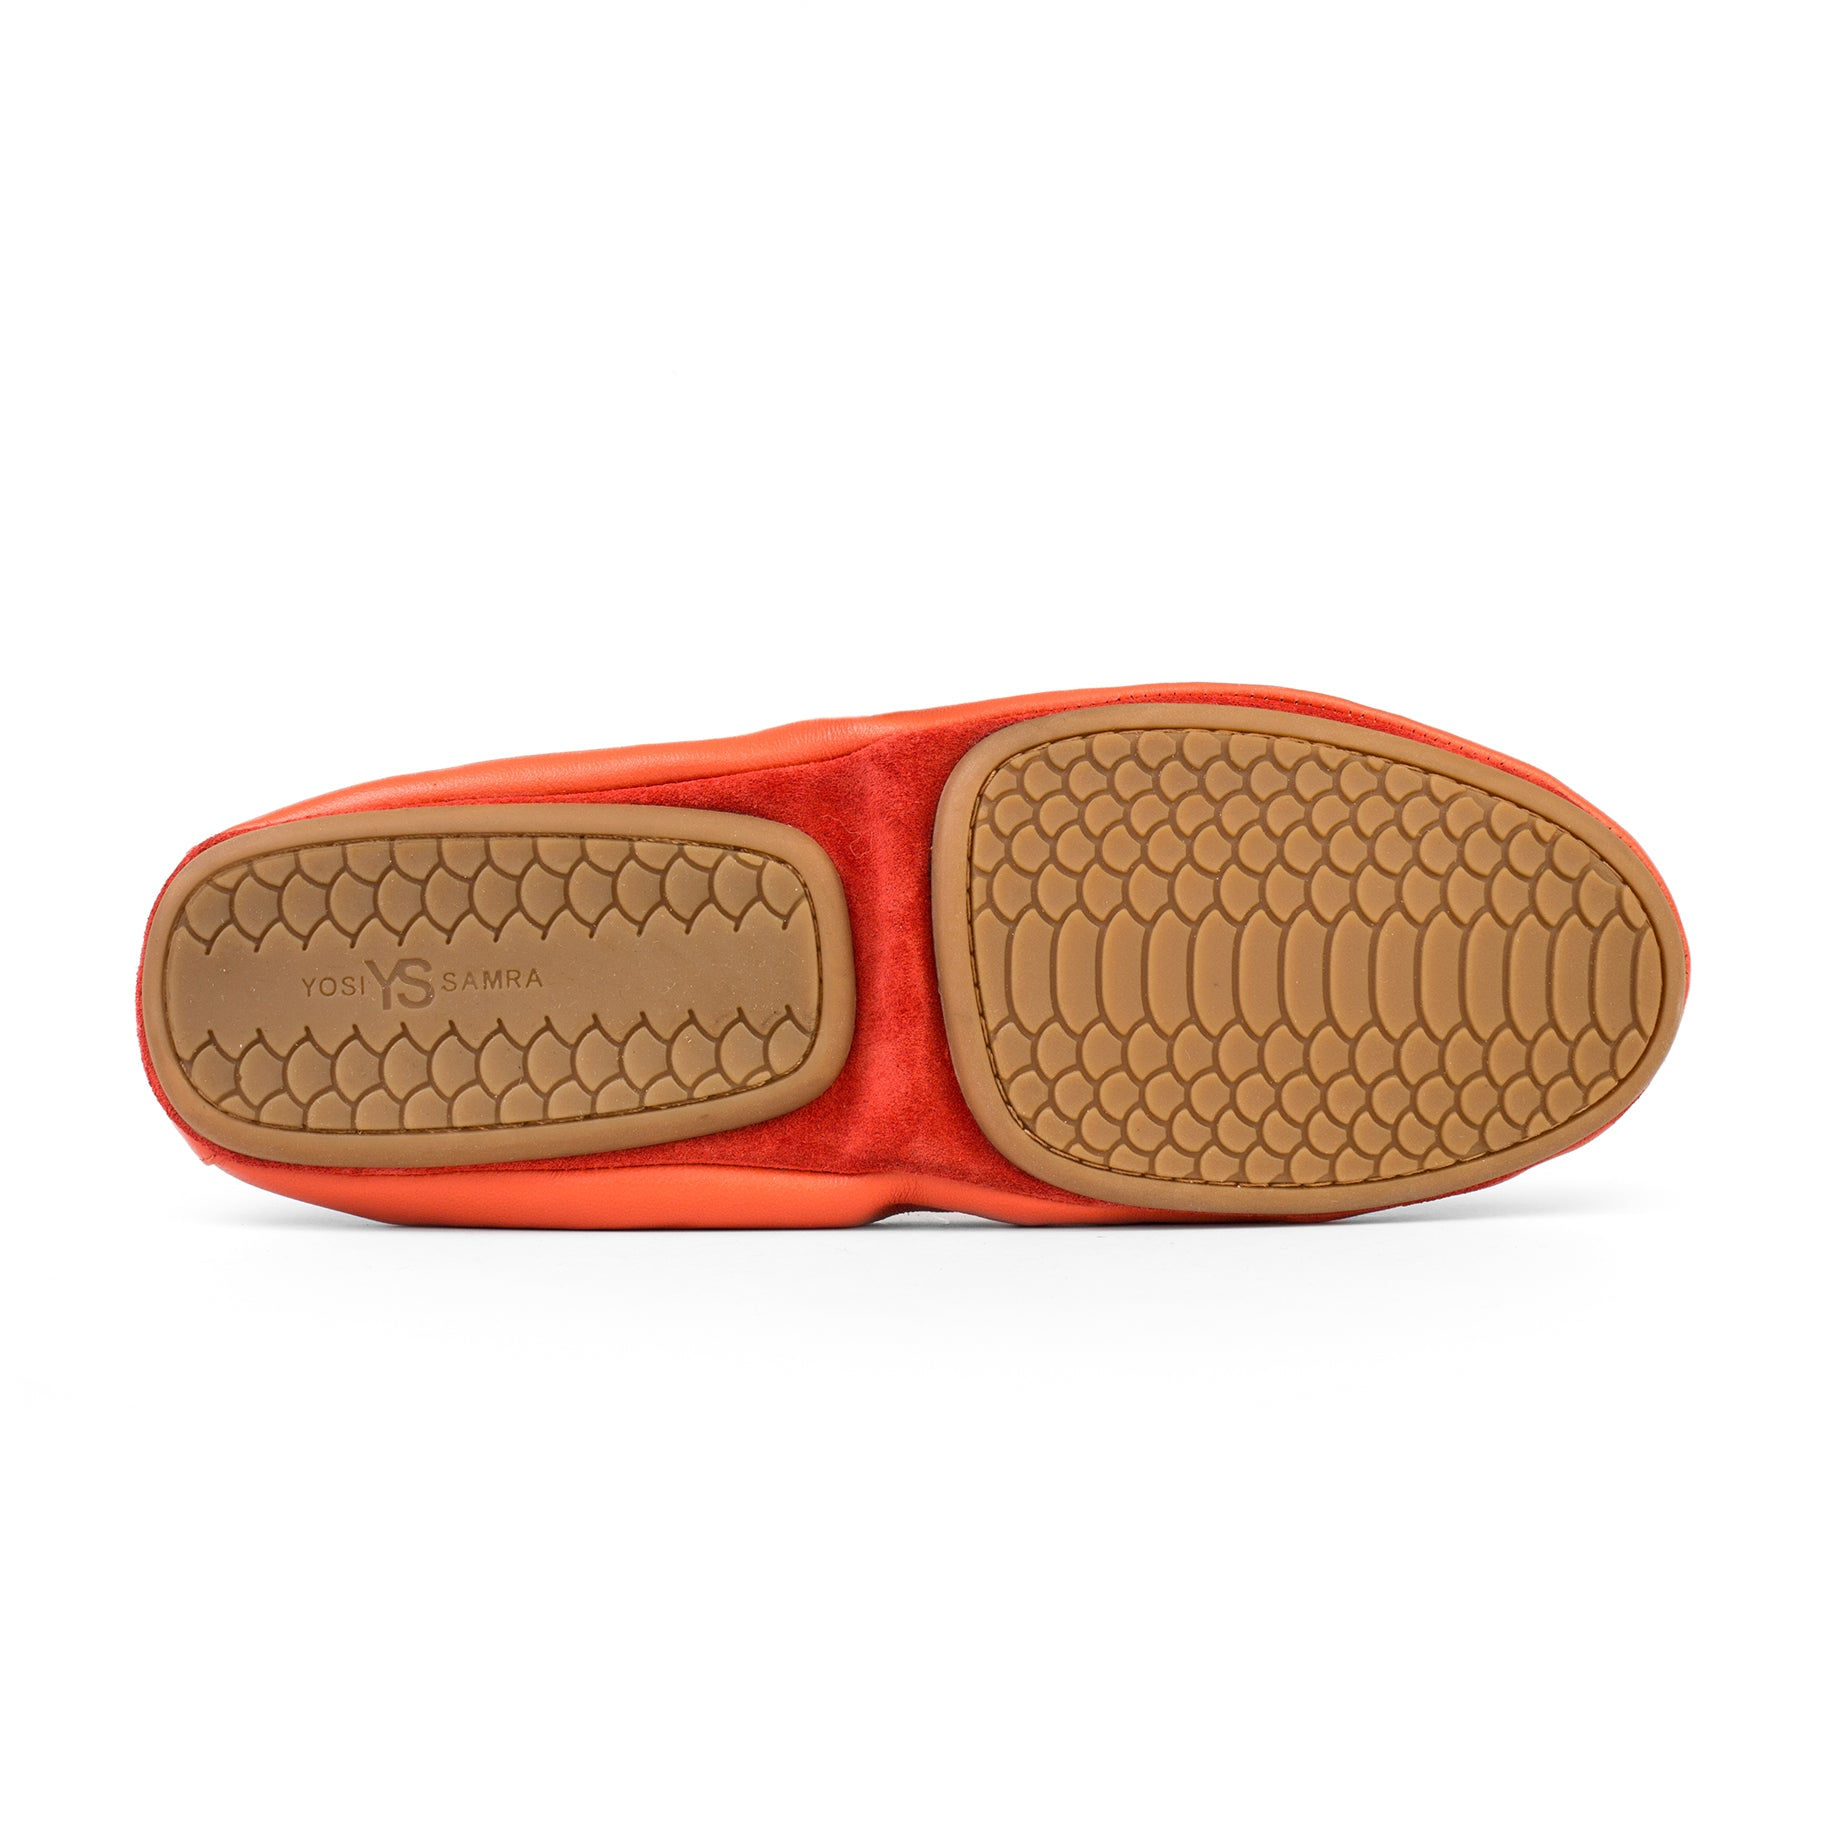 yosi samra orange leather ballet flat